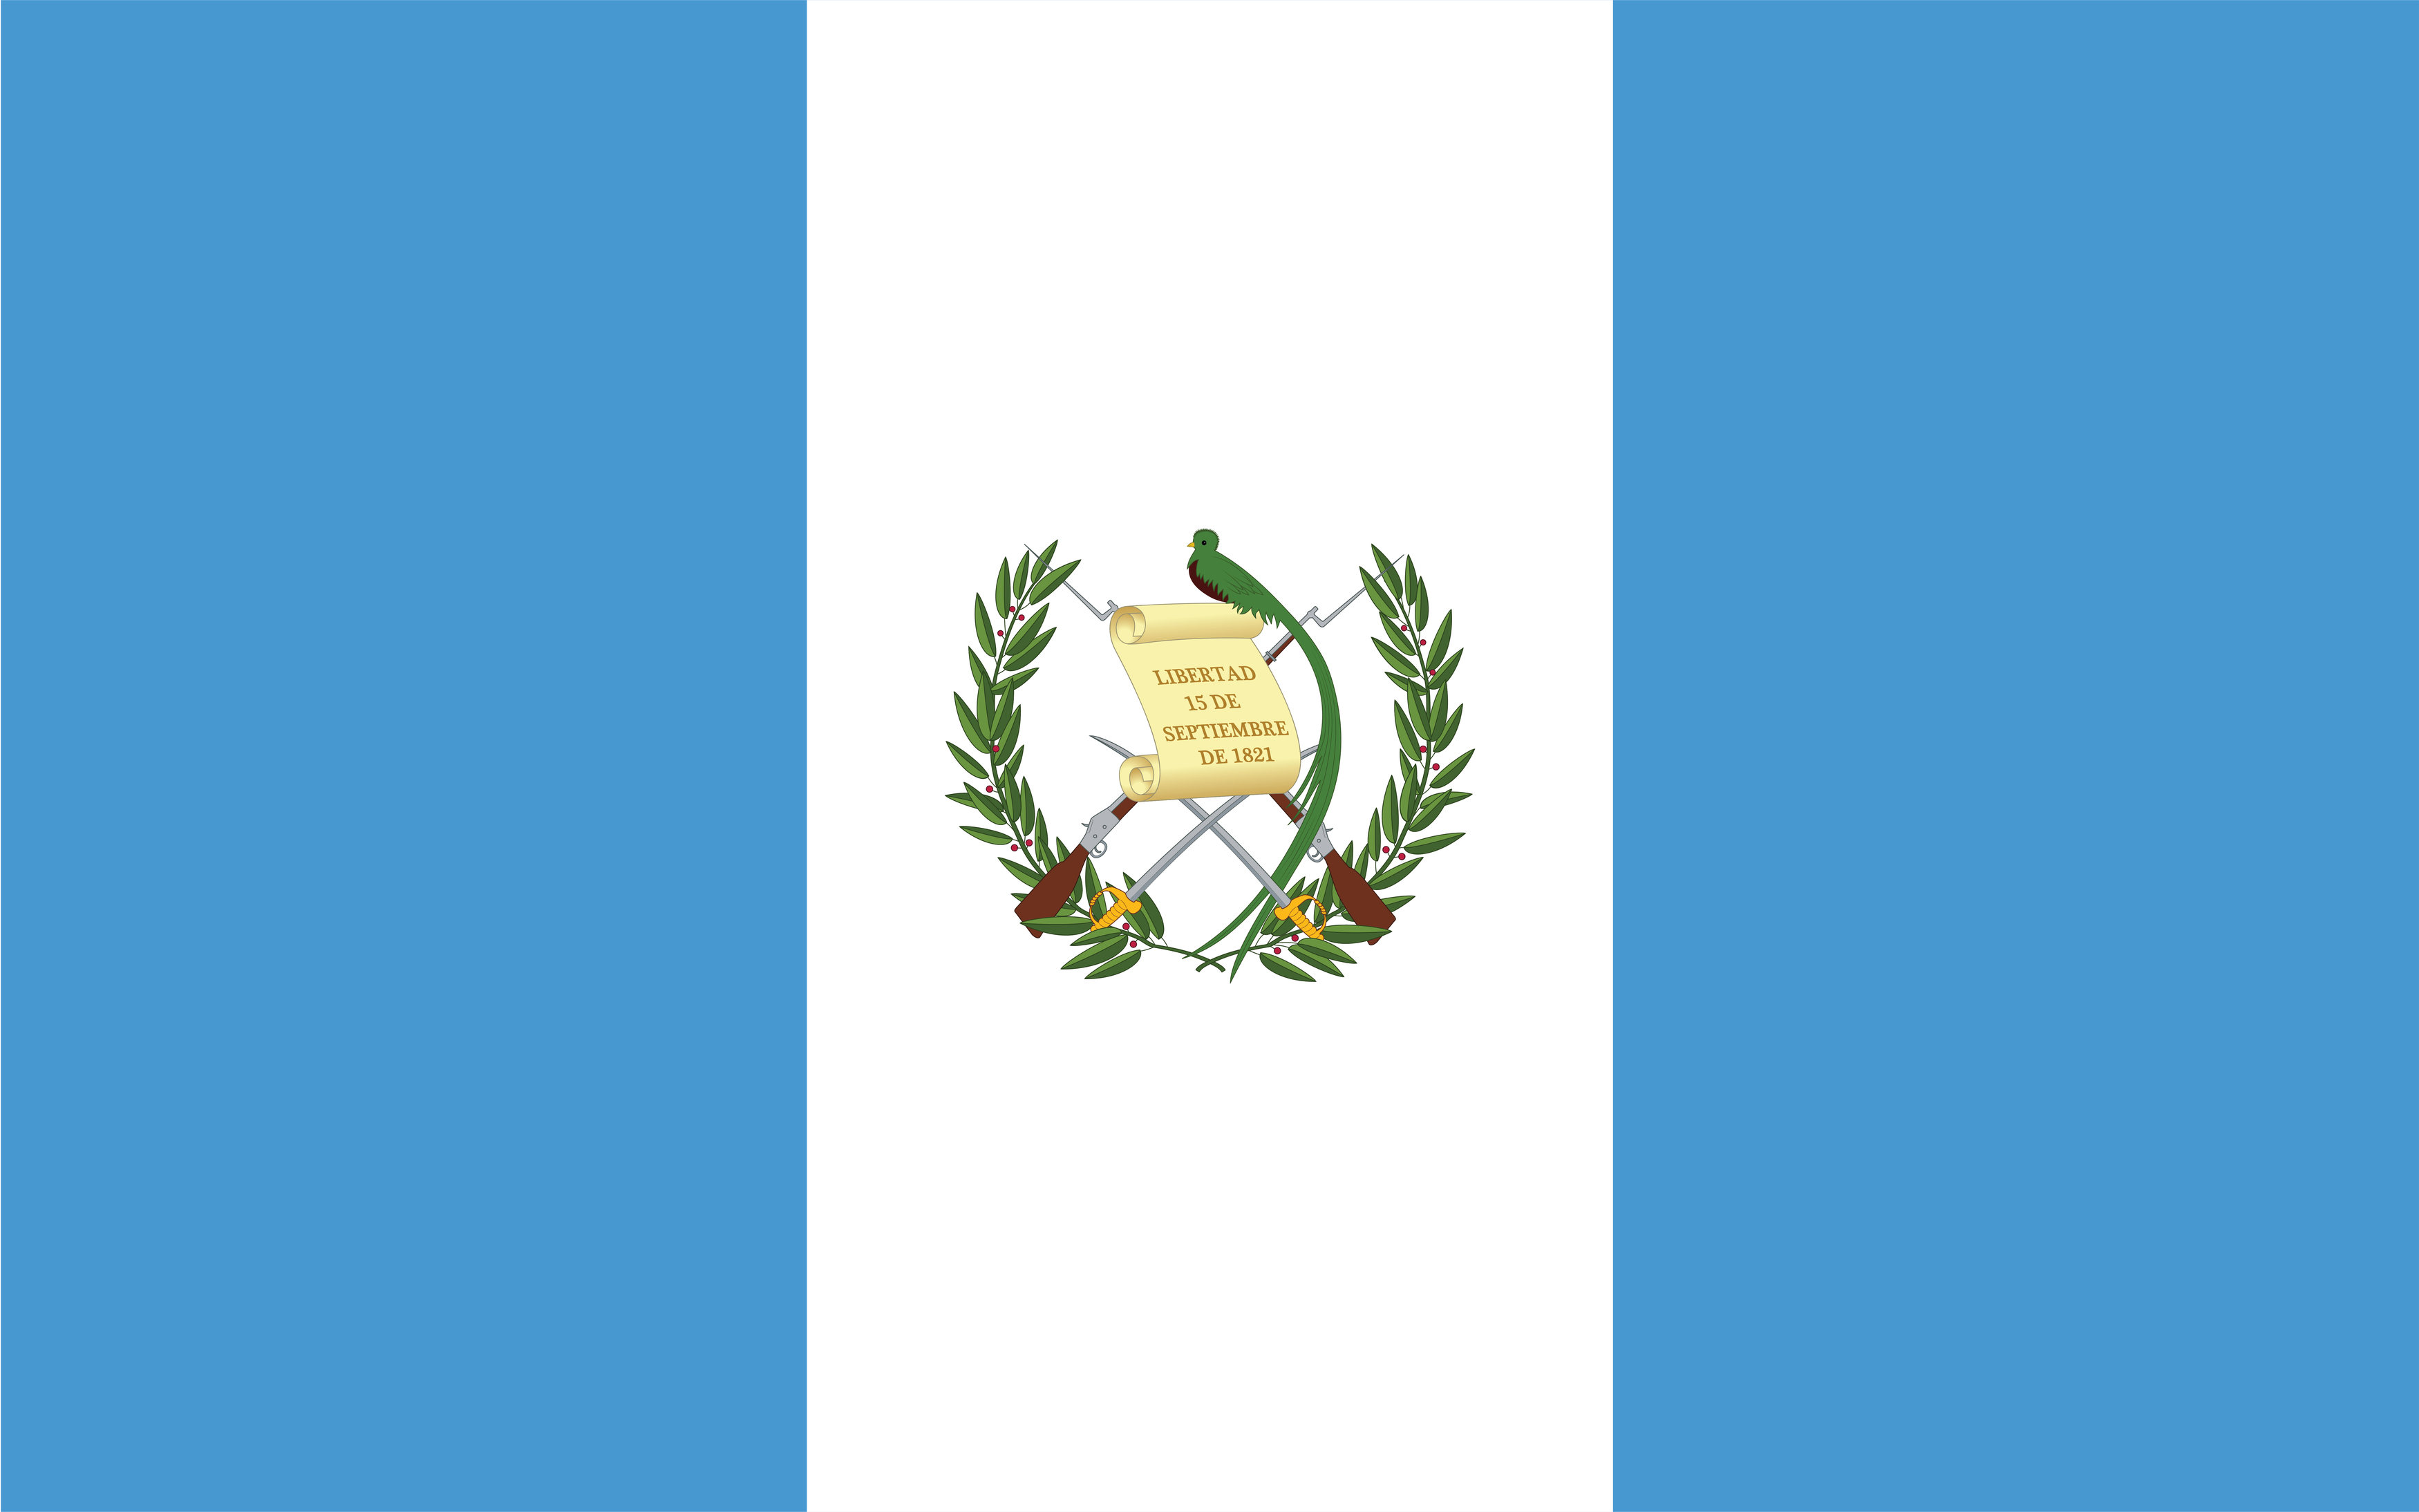 Flag of Guatemala is a tricolor flag of blue, white, blue vertical bands with the coat of arms centered on the white field.